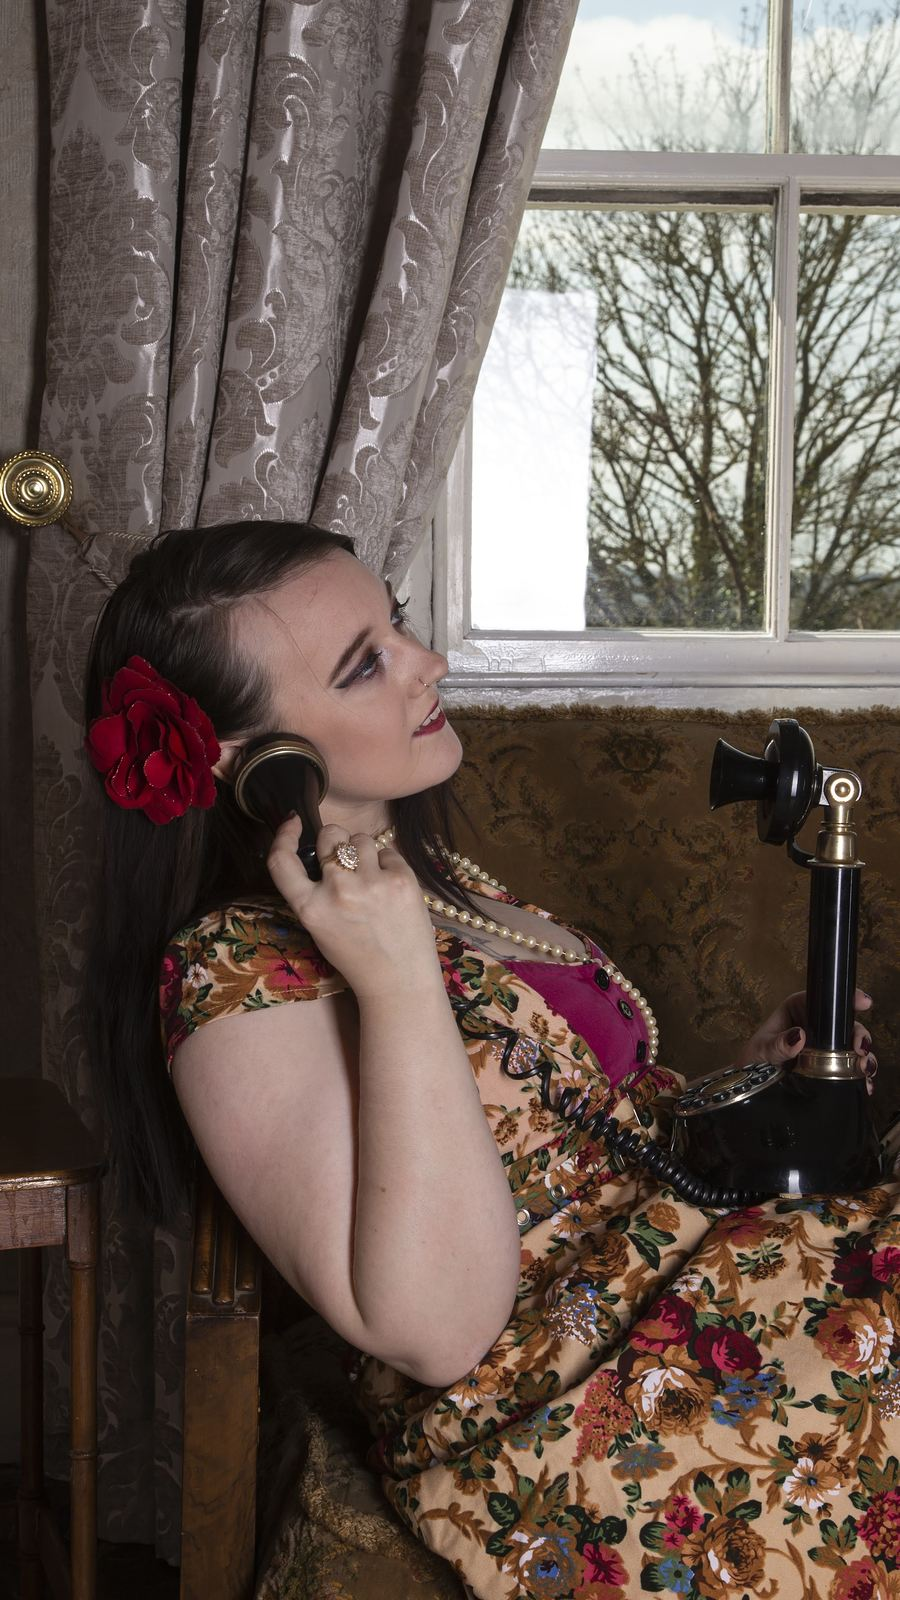 On hold / Photography by Stephen G., Taken at Sandon Studio / Uploaded 8th May 2019 @ 05:12 PM